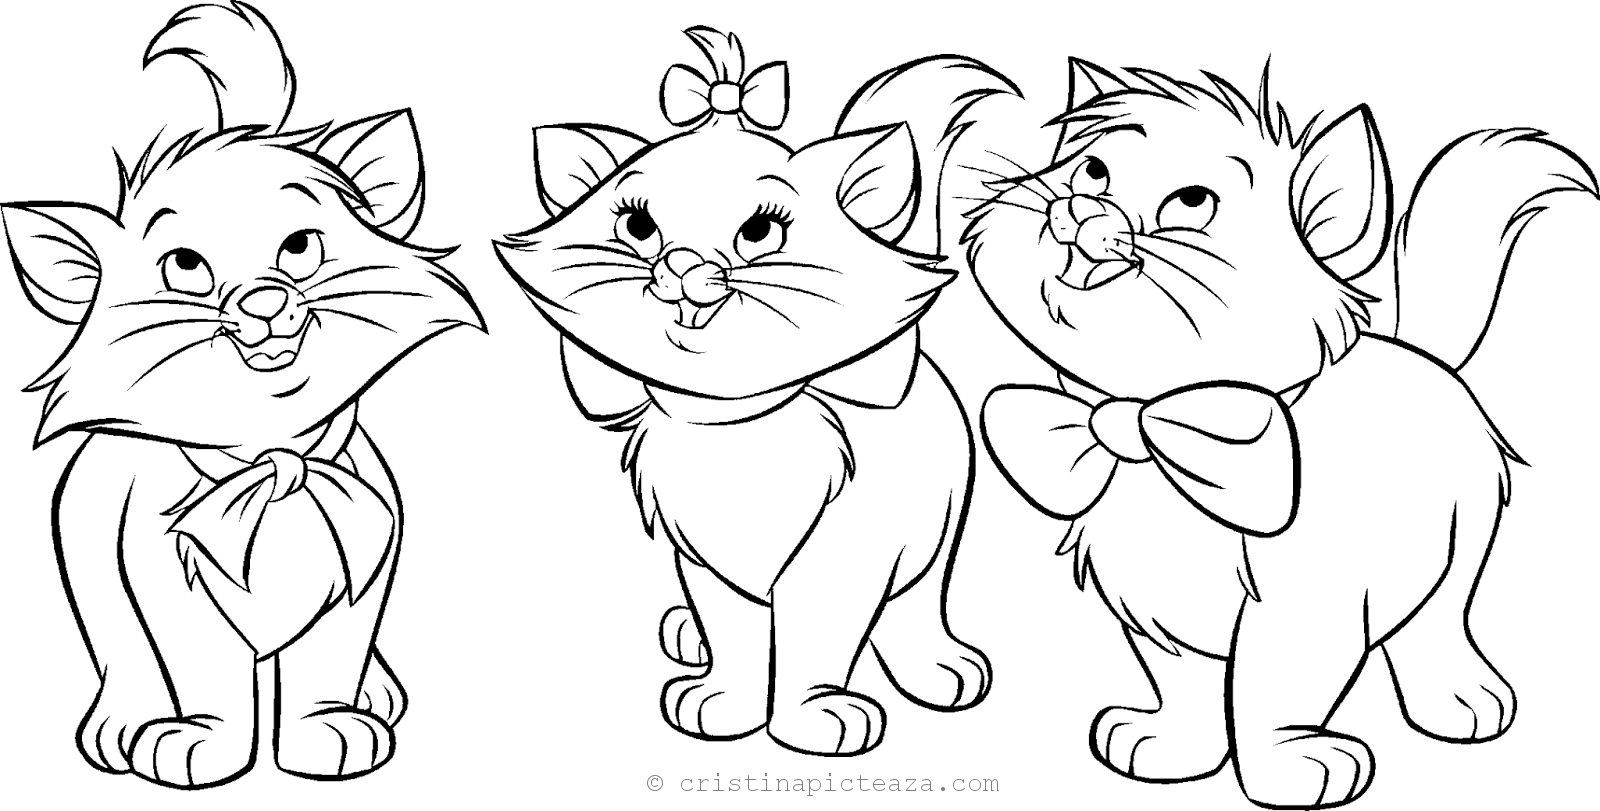 Cat Coloring Pages Coloring Pages With Cats For Kids